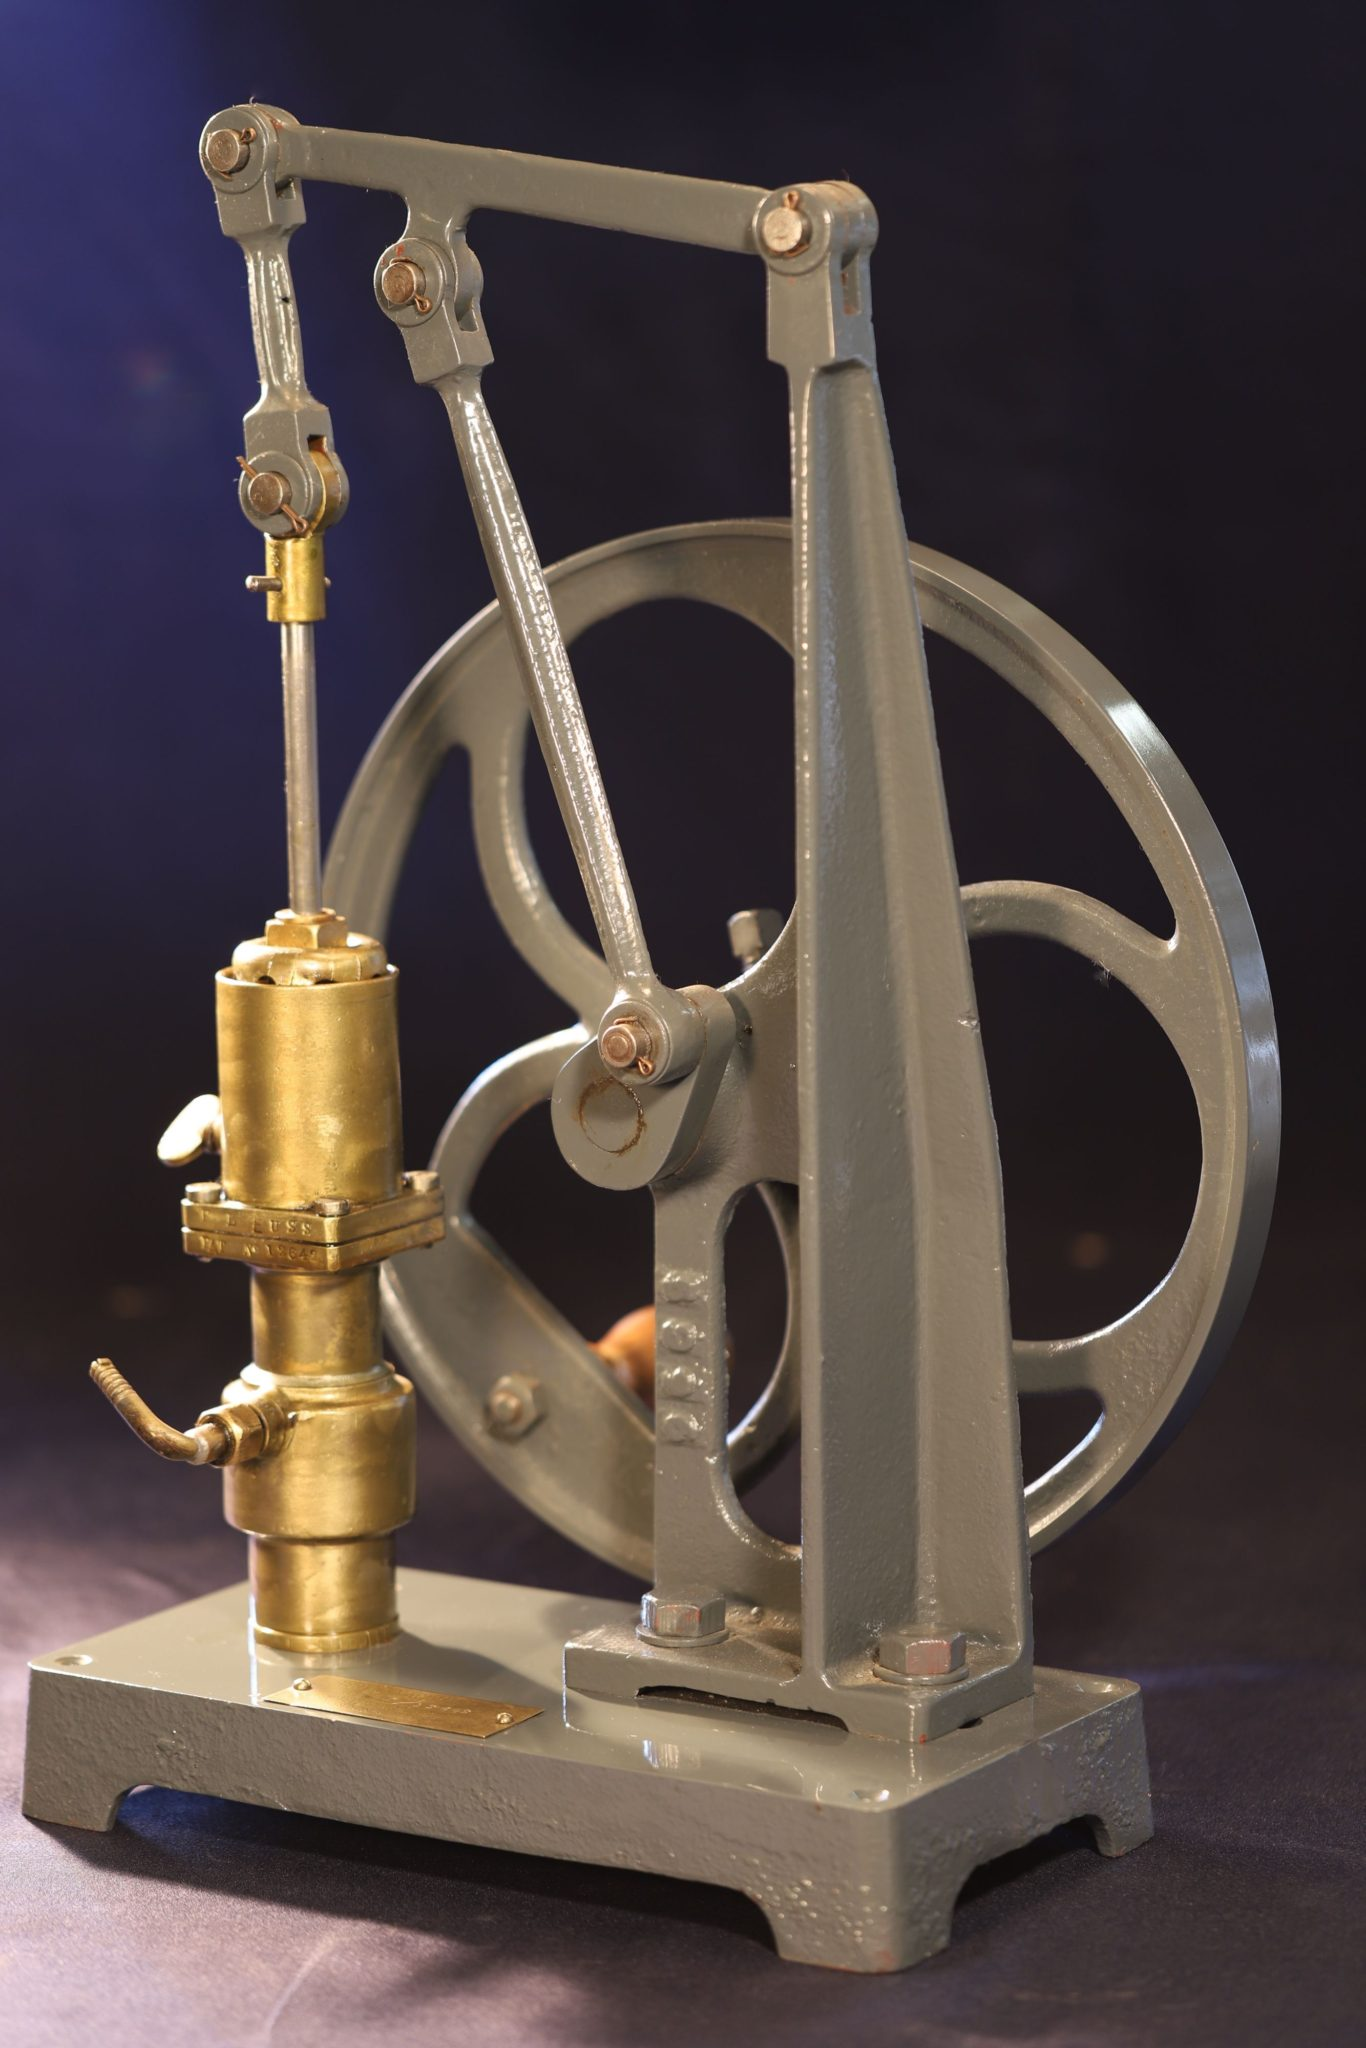 Image of Geryk Vacuum Pump No 12642